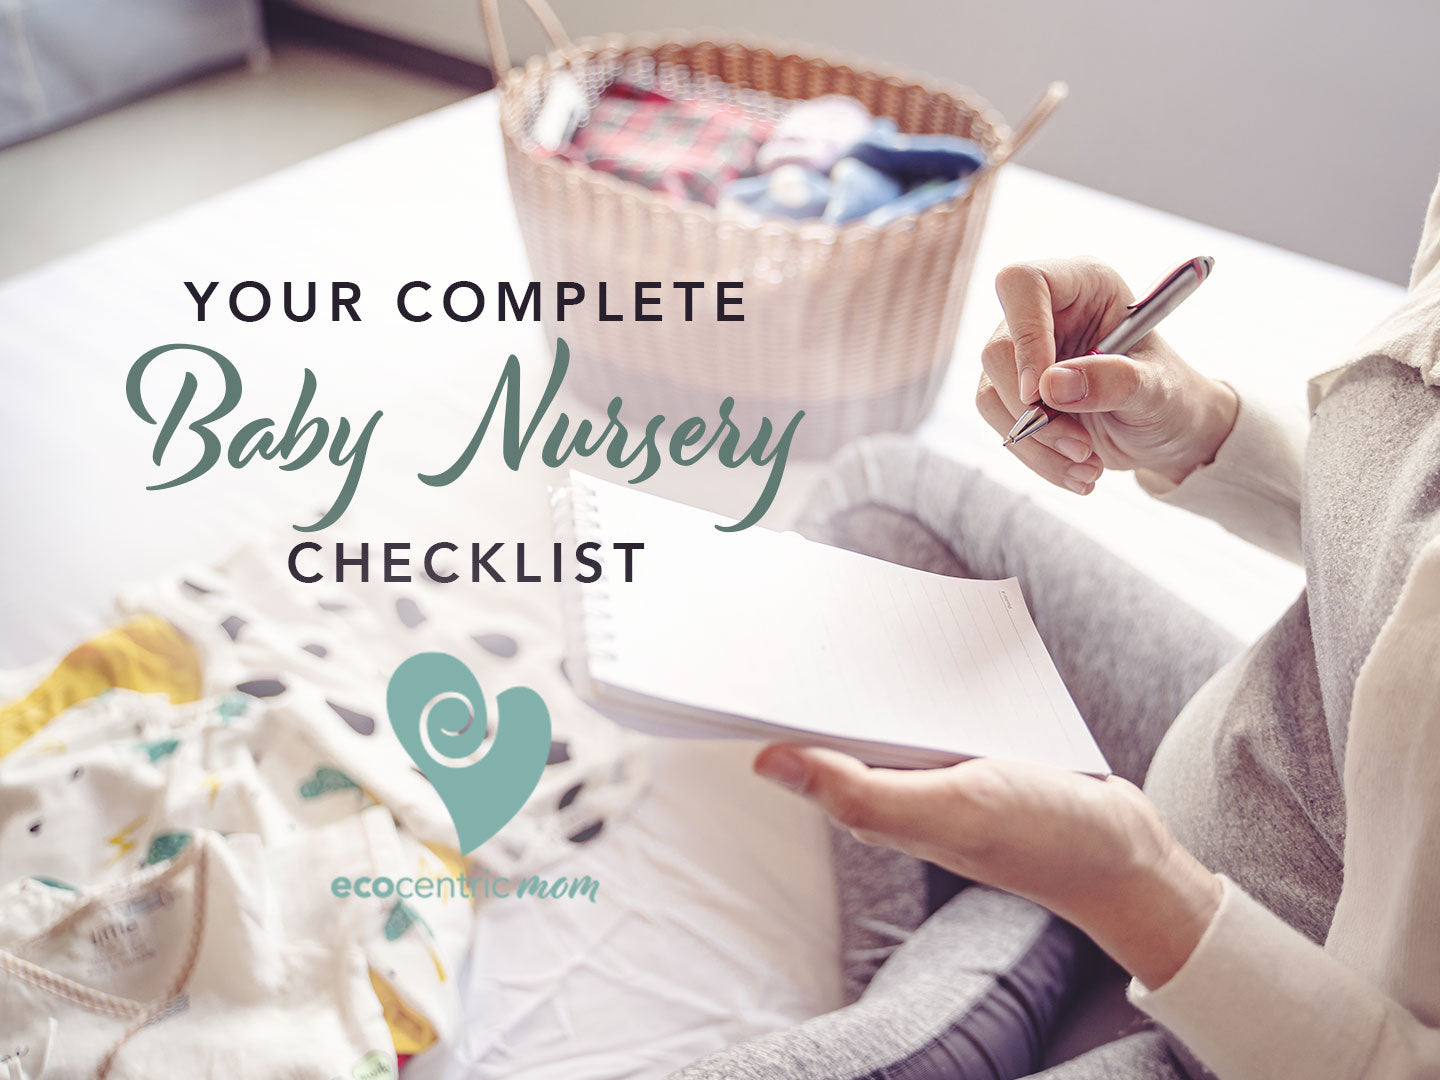 Your Complete Baby Nursery Checklist